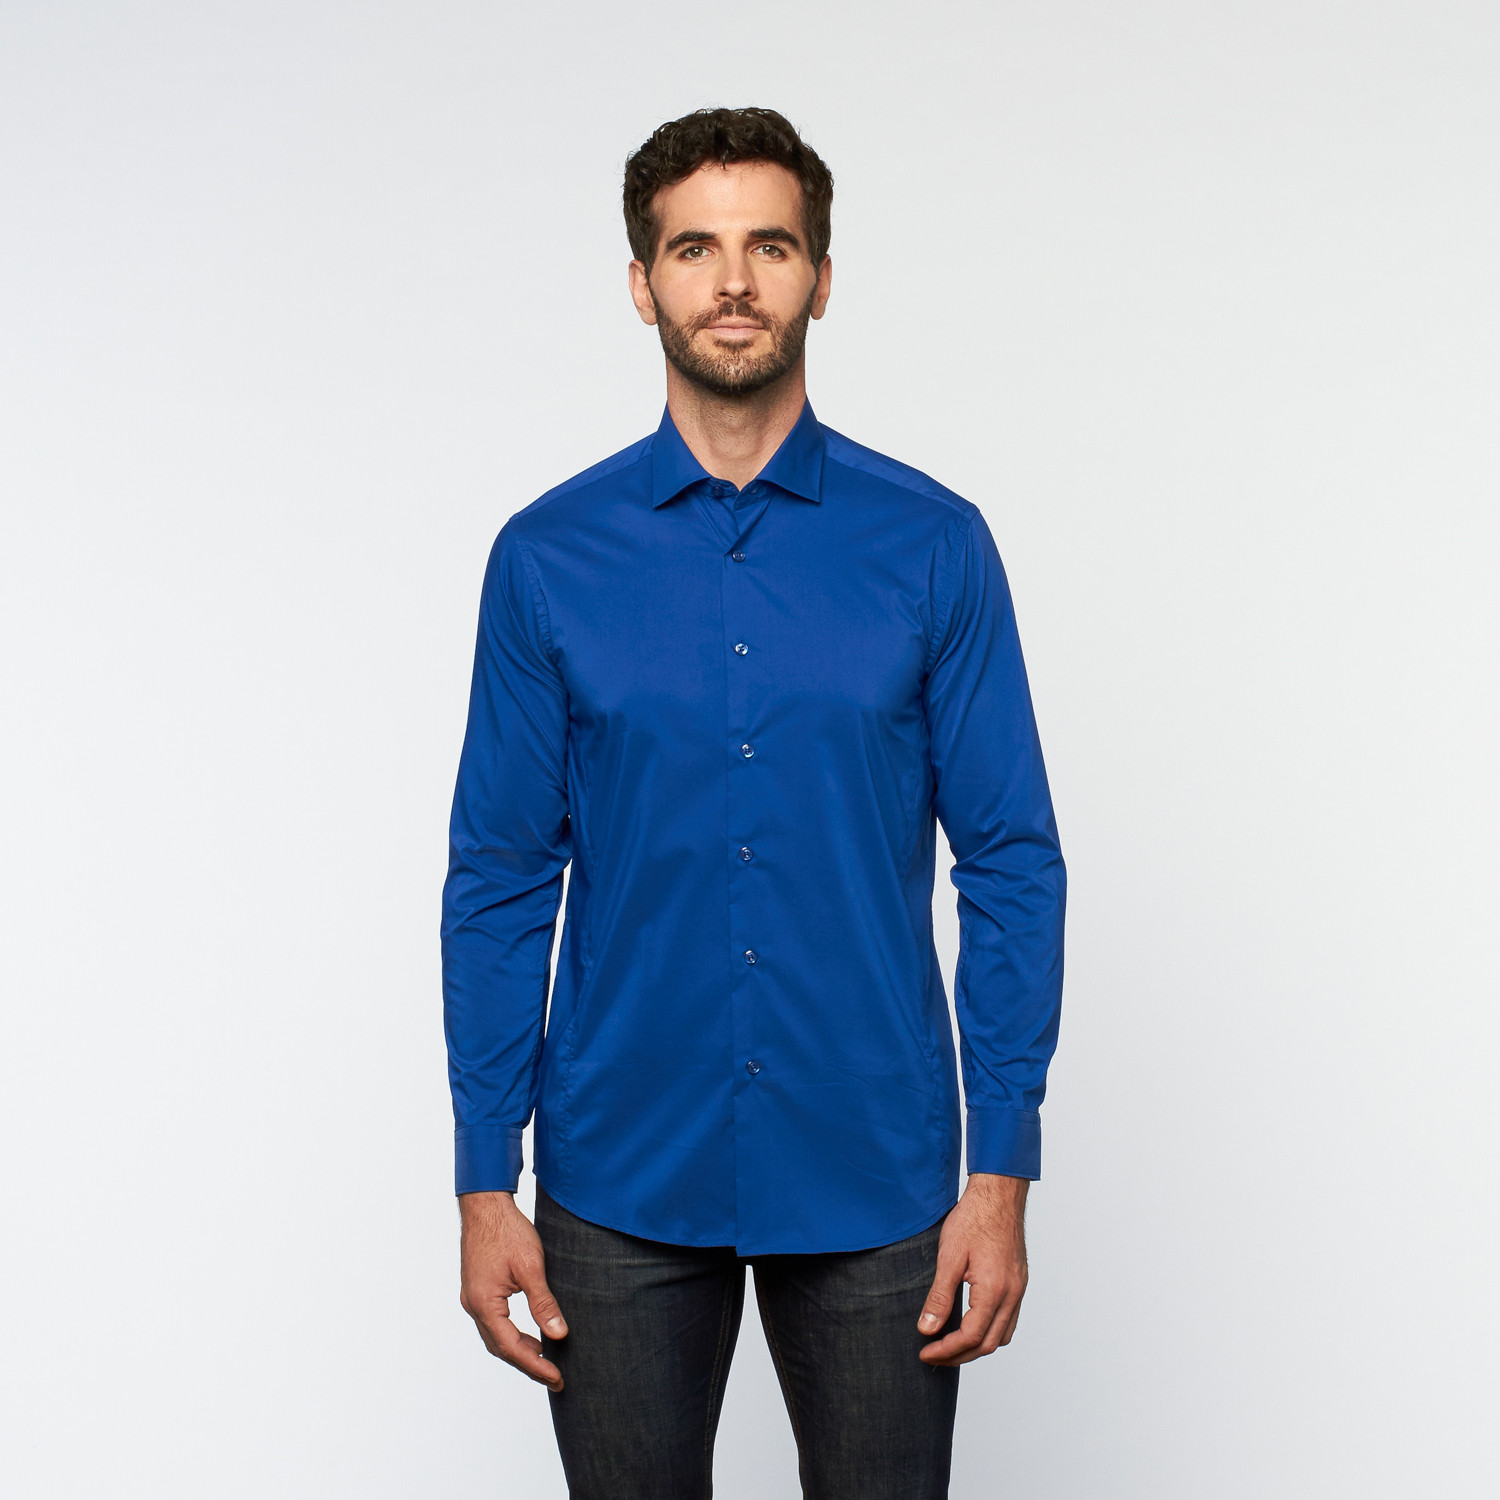 Brio milano button up long sleeve shirt royal blue for Royals button up shirt